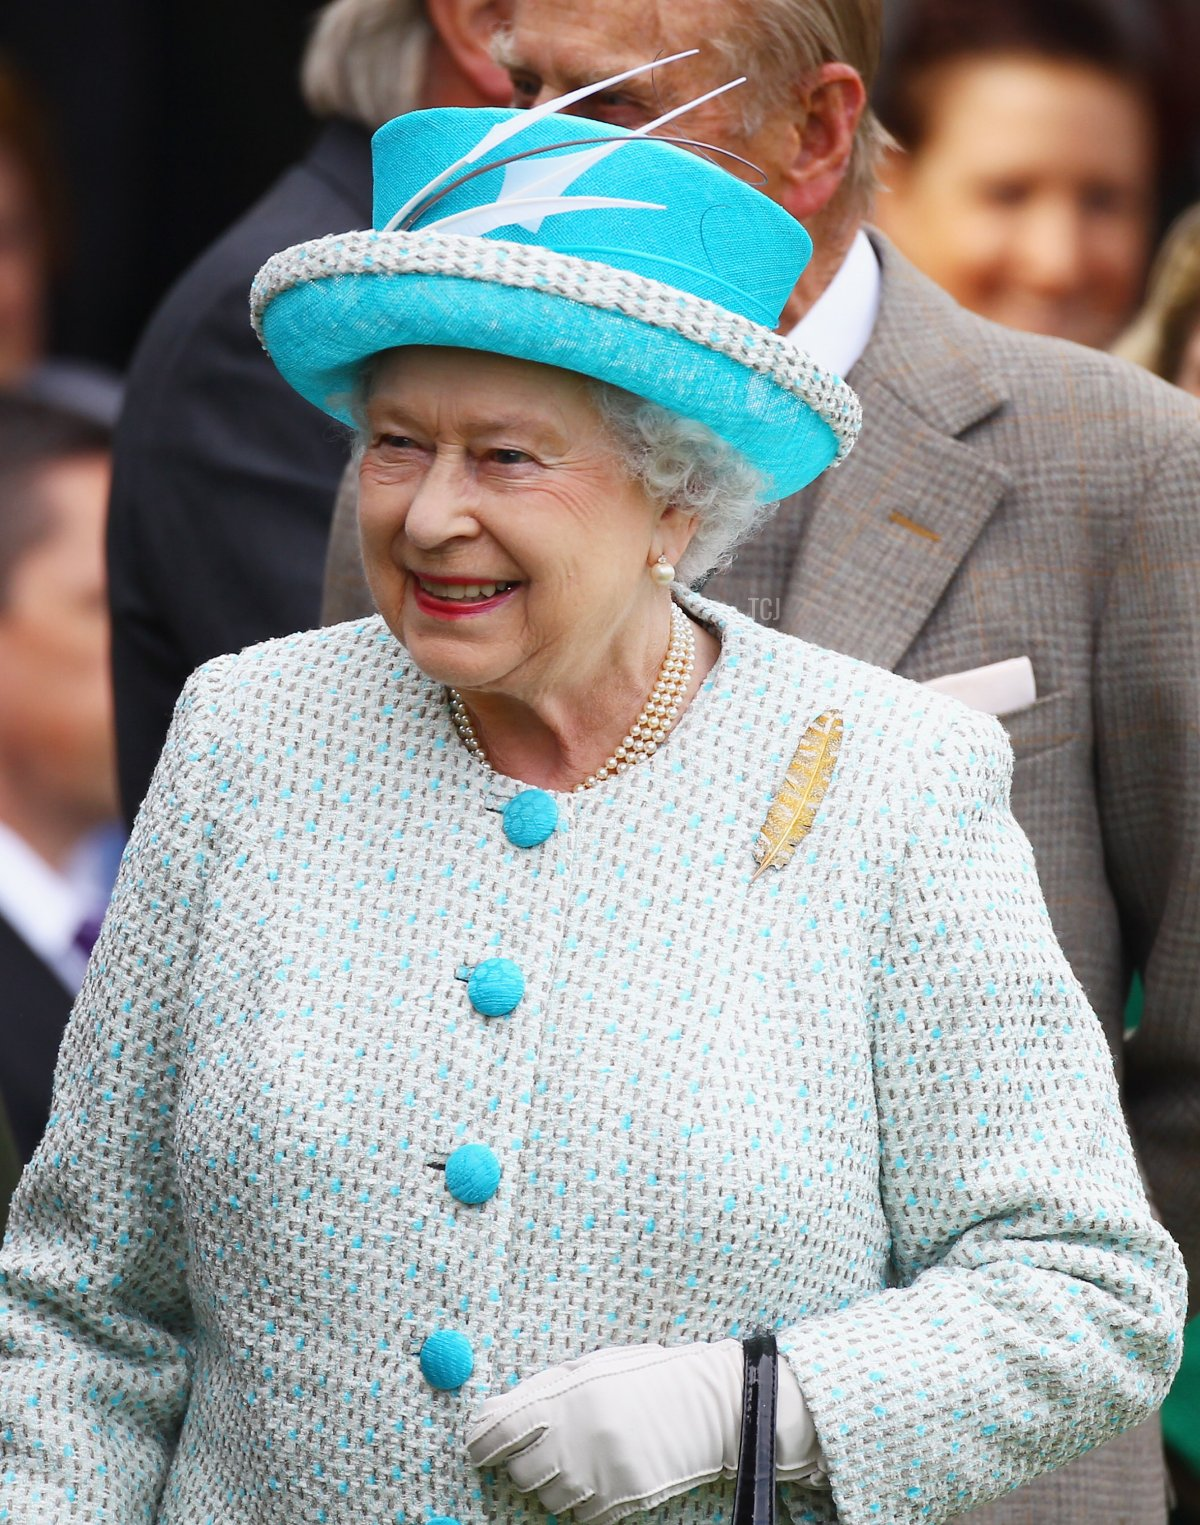 Queen Elizabeth II attends the Braemar Highland Games at The Princess Royal and Duke of Fife Memorial Park on September 3, 2011 in Braemar, Scotland